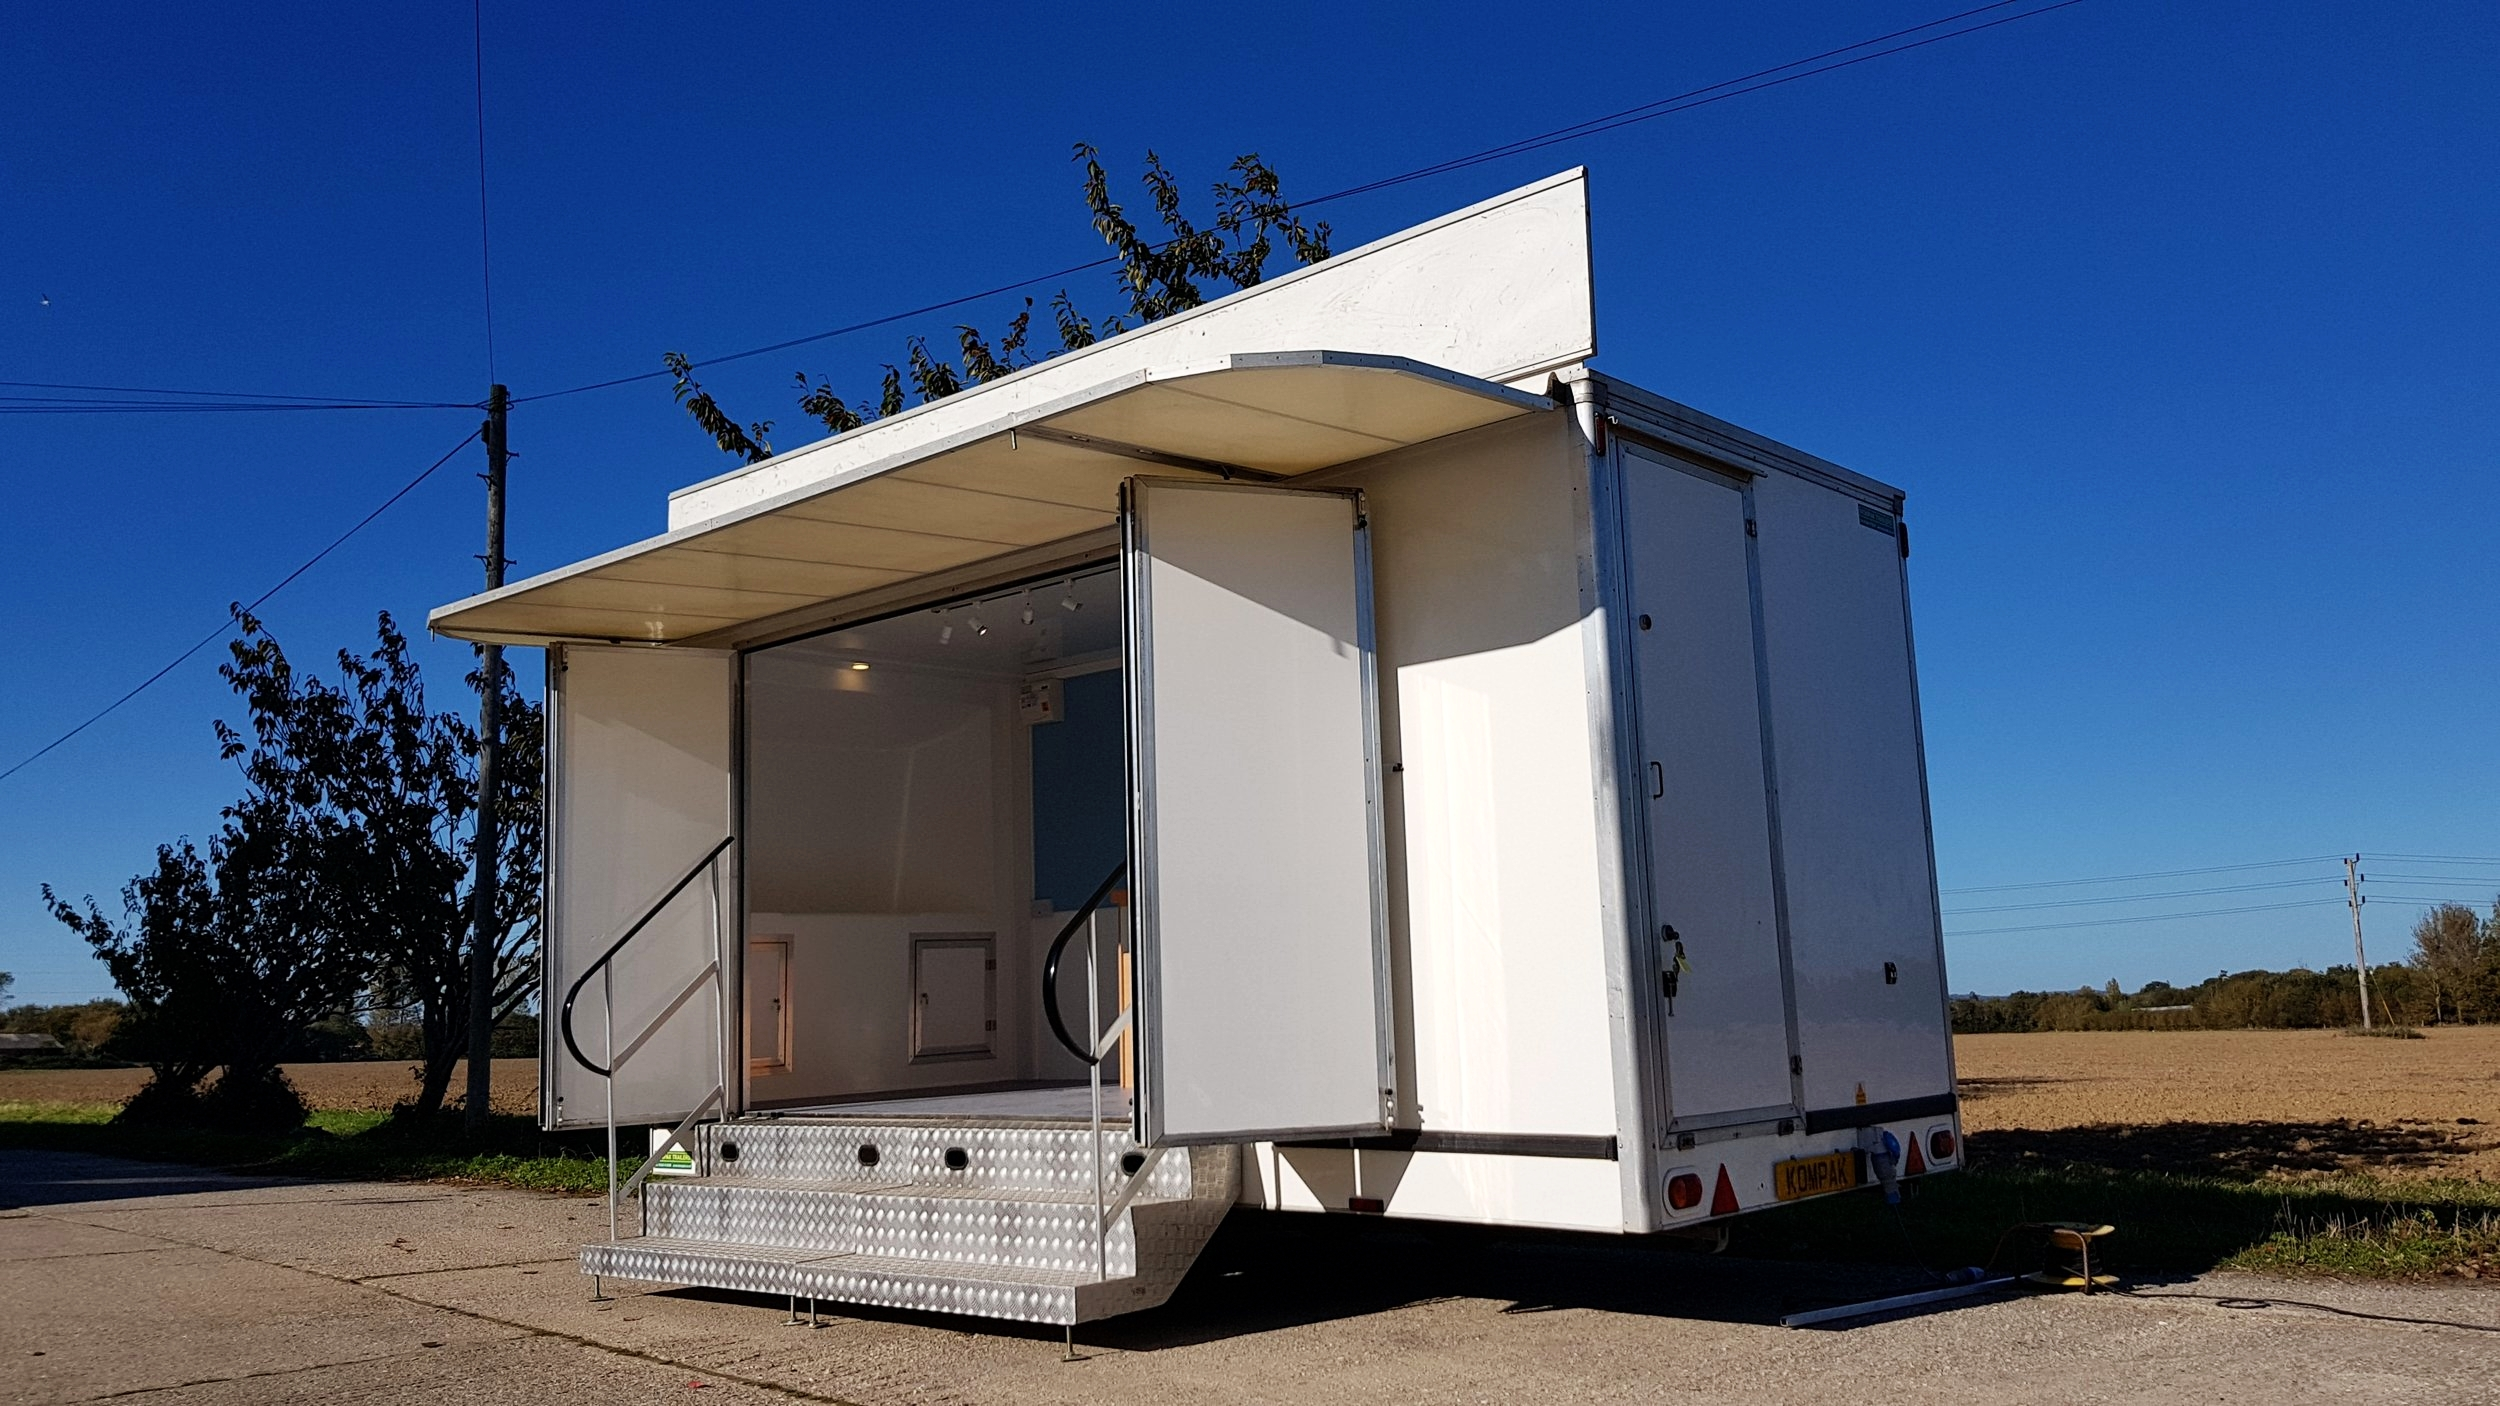 Exhibition trailer | Second hand trailer | Display trailer | Promotional vehicle | product promotion | Second hand display unit